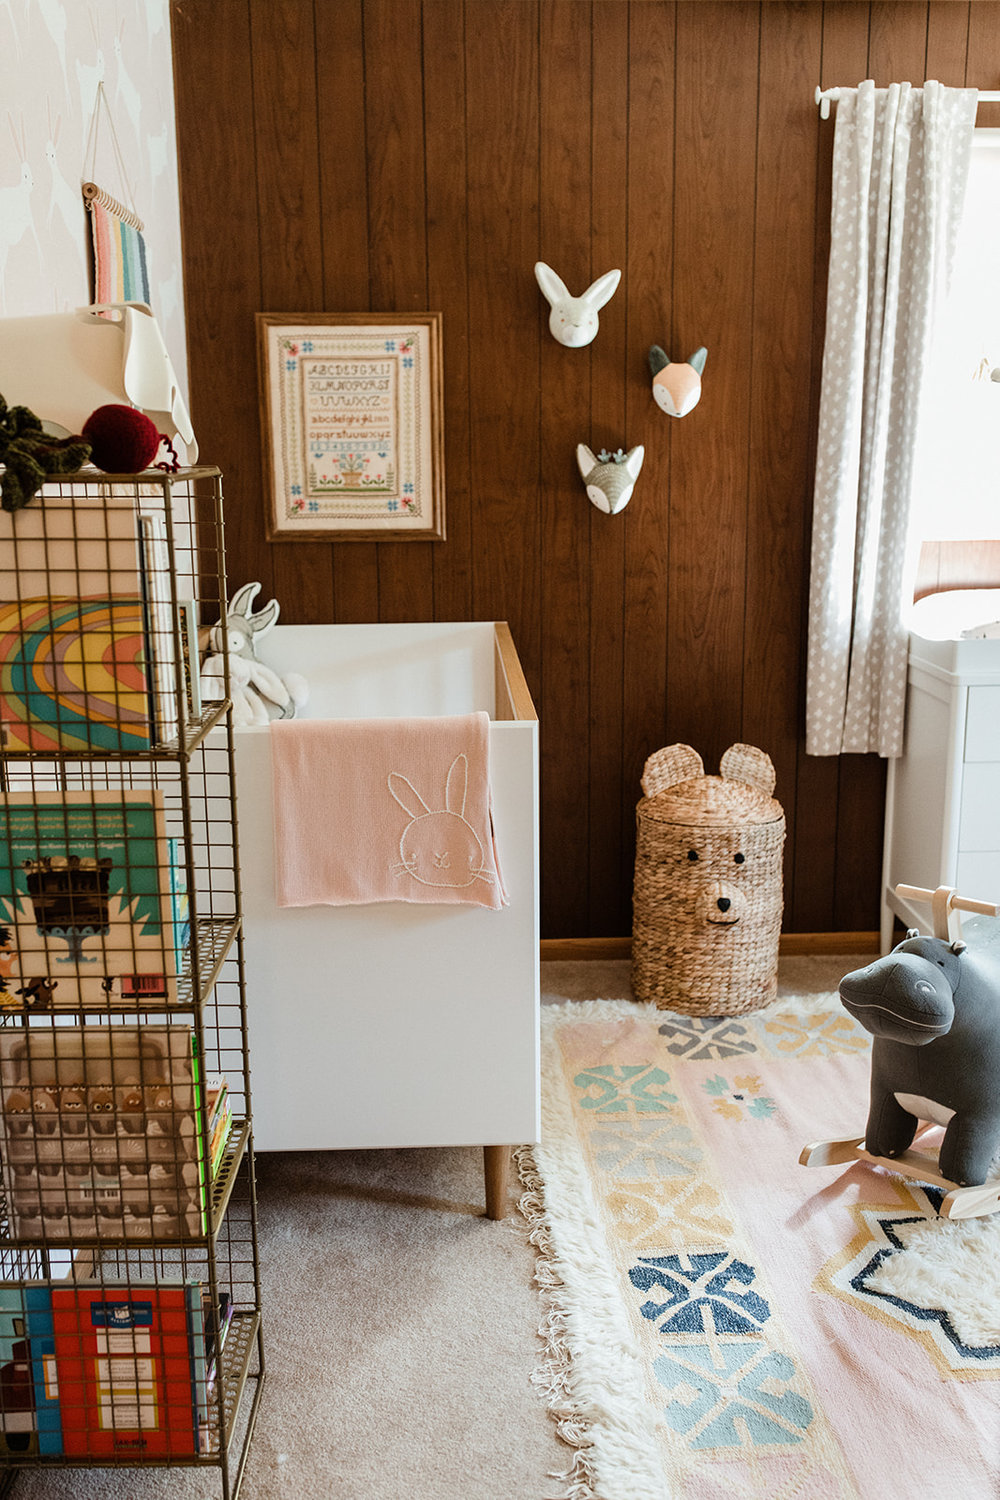 6-28-19-molly-yeh-crate-and-kids-14.jpg